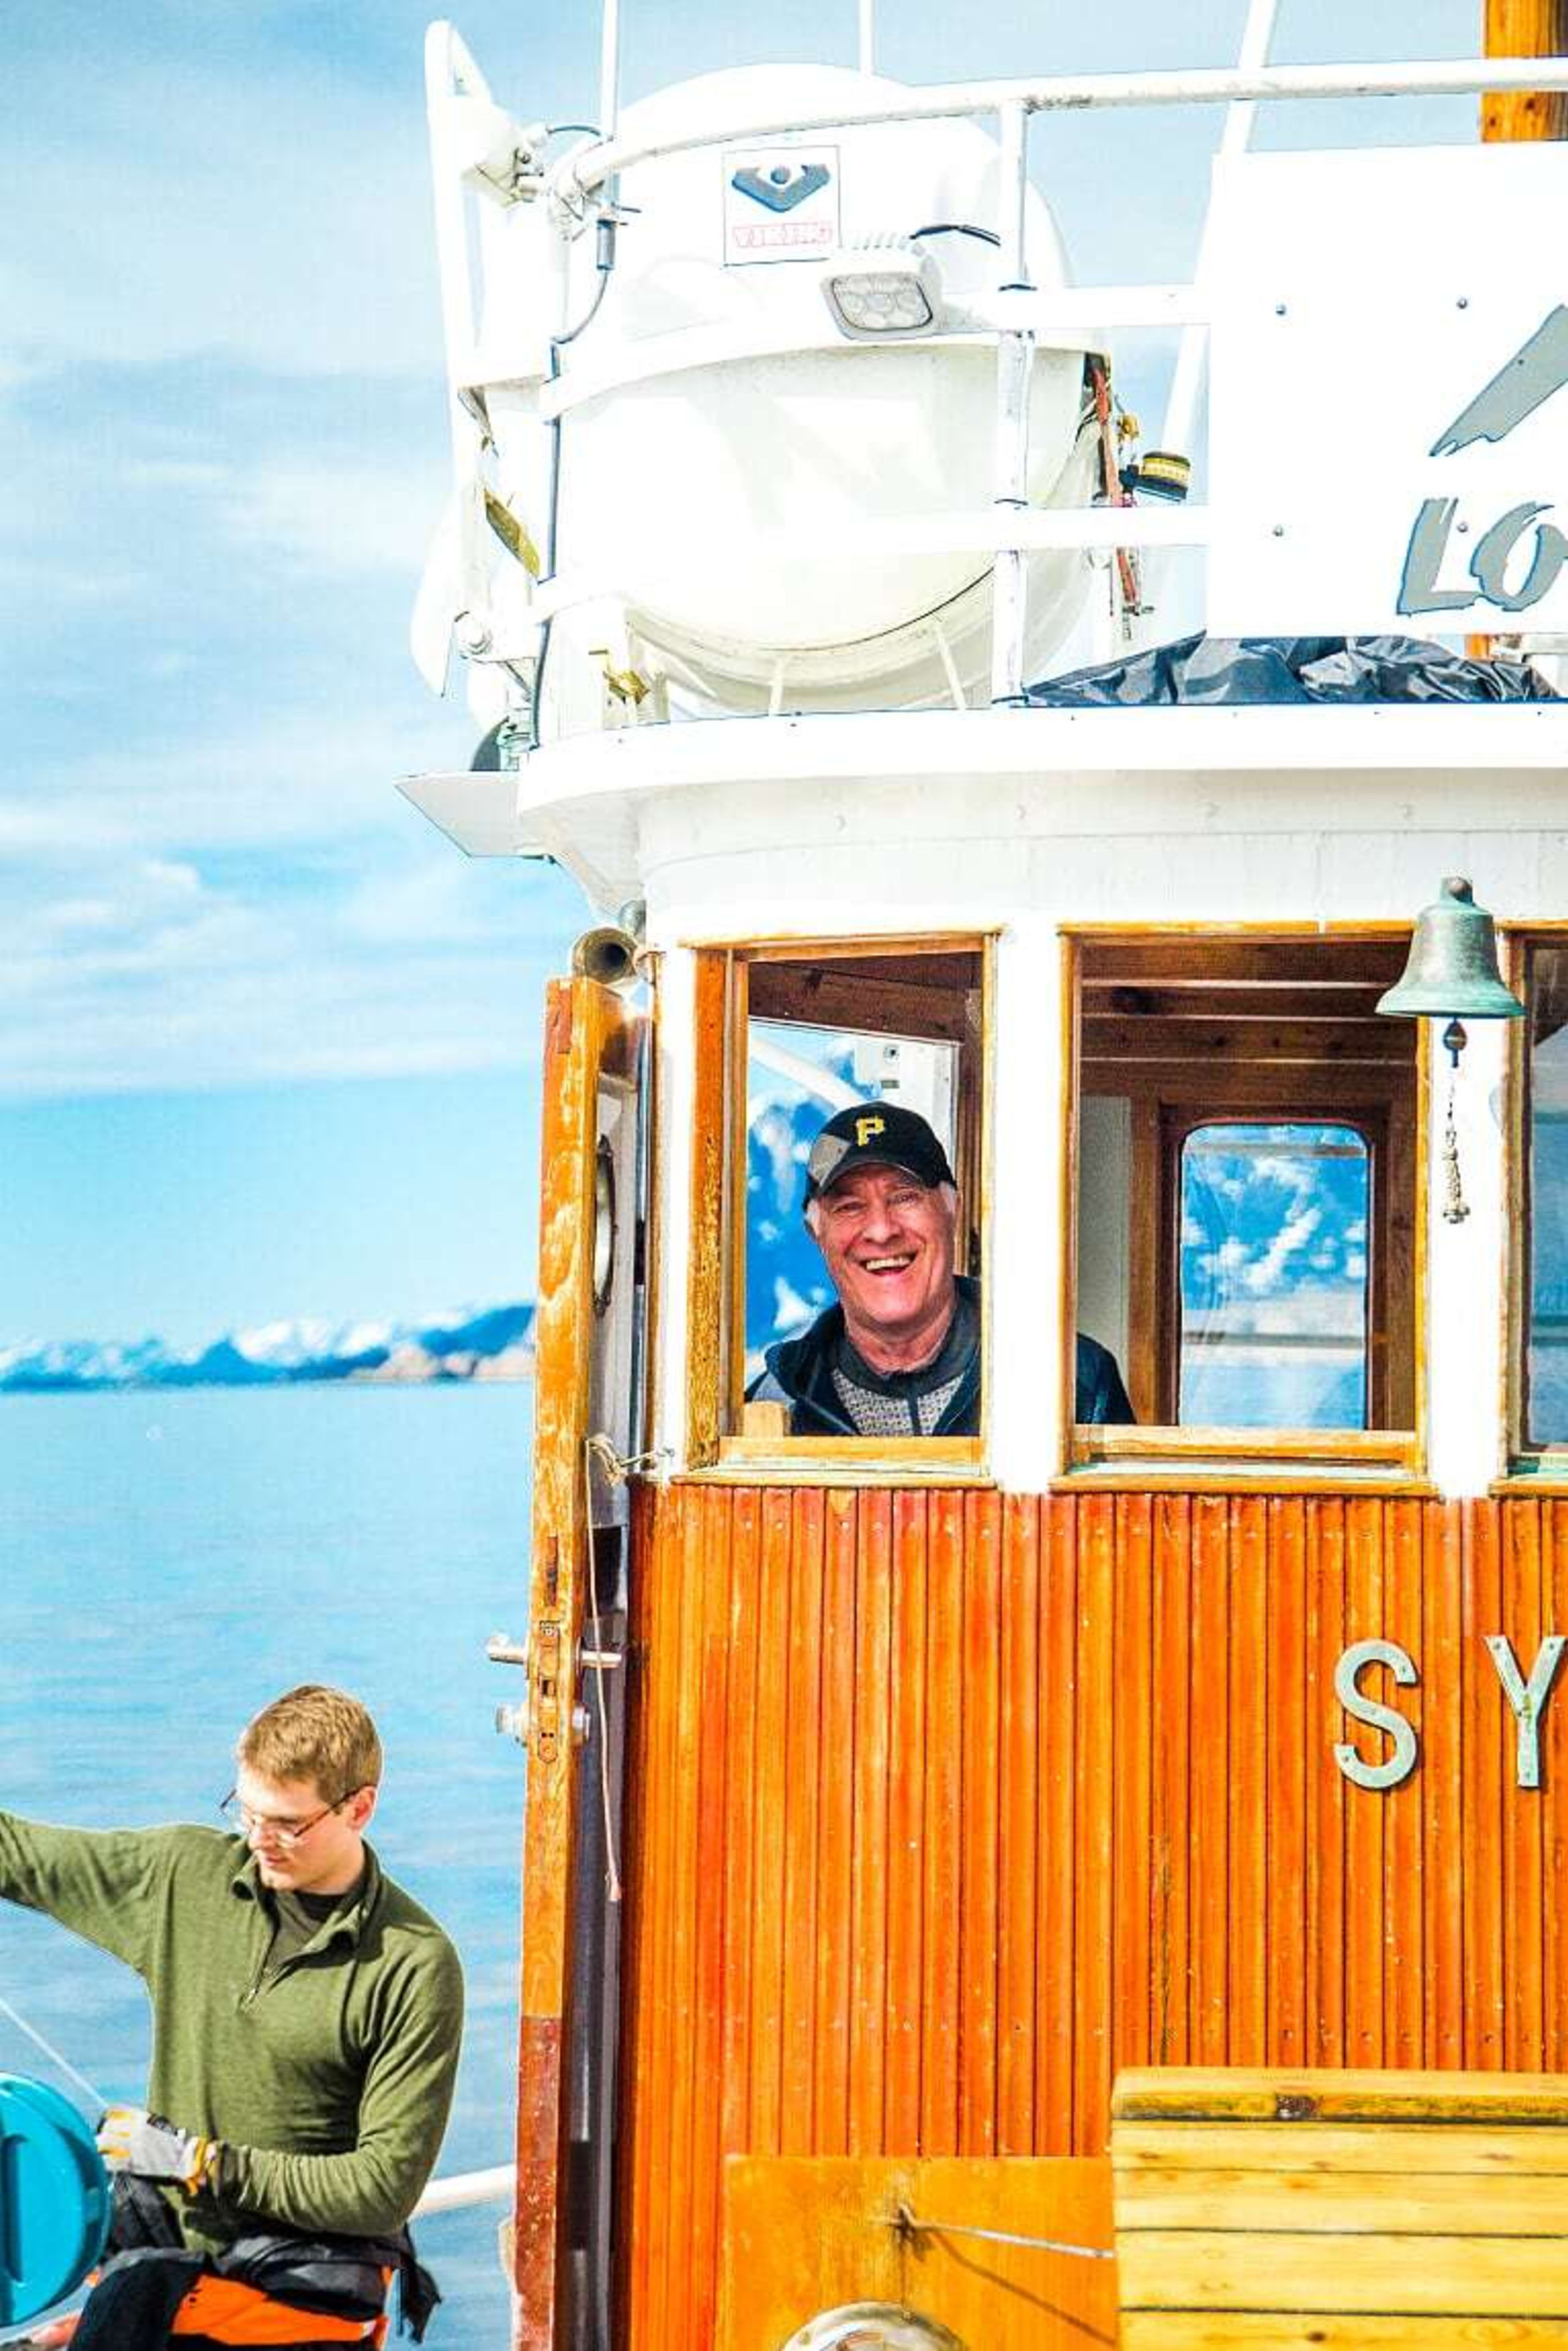 Captain Albertsen on his 100 year old boat MV Symra